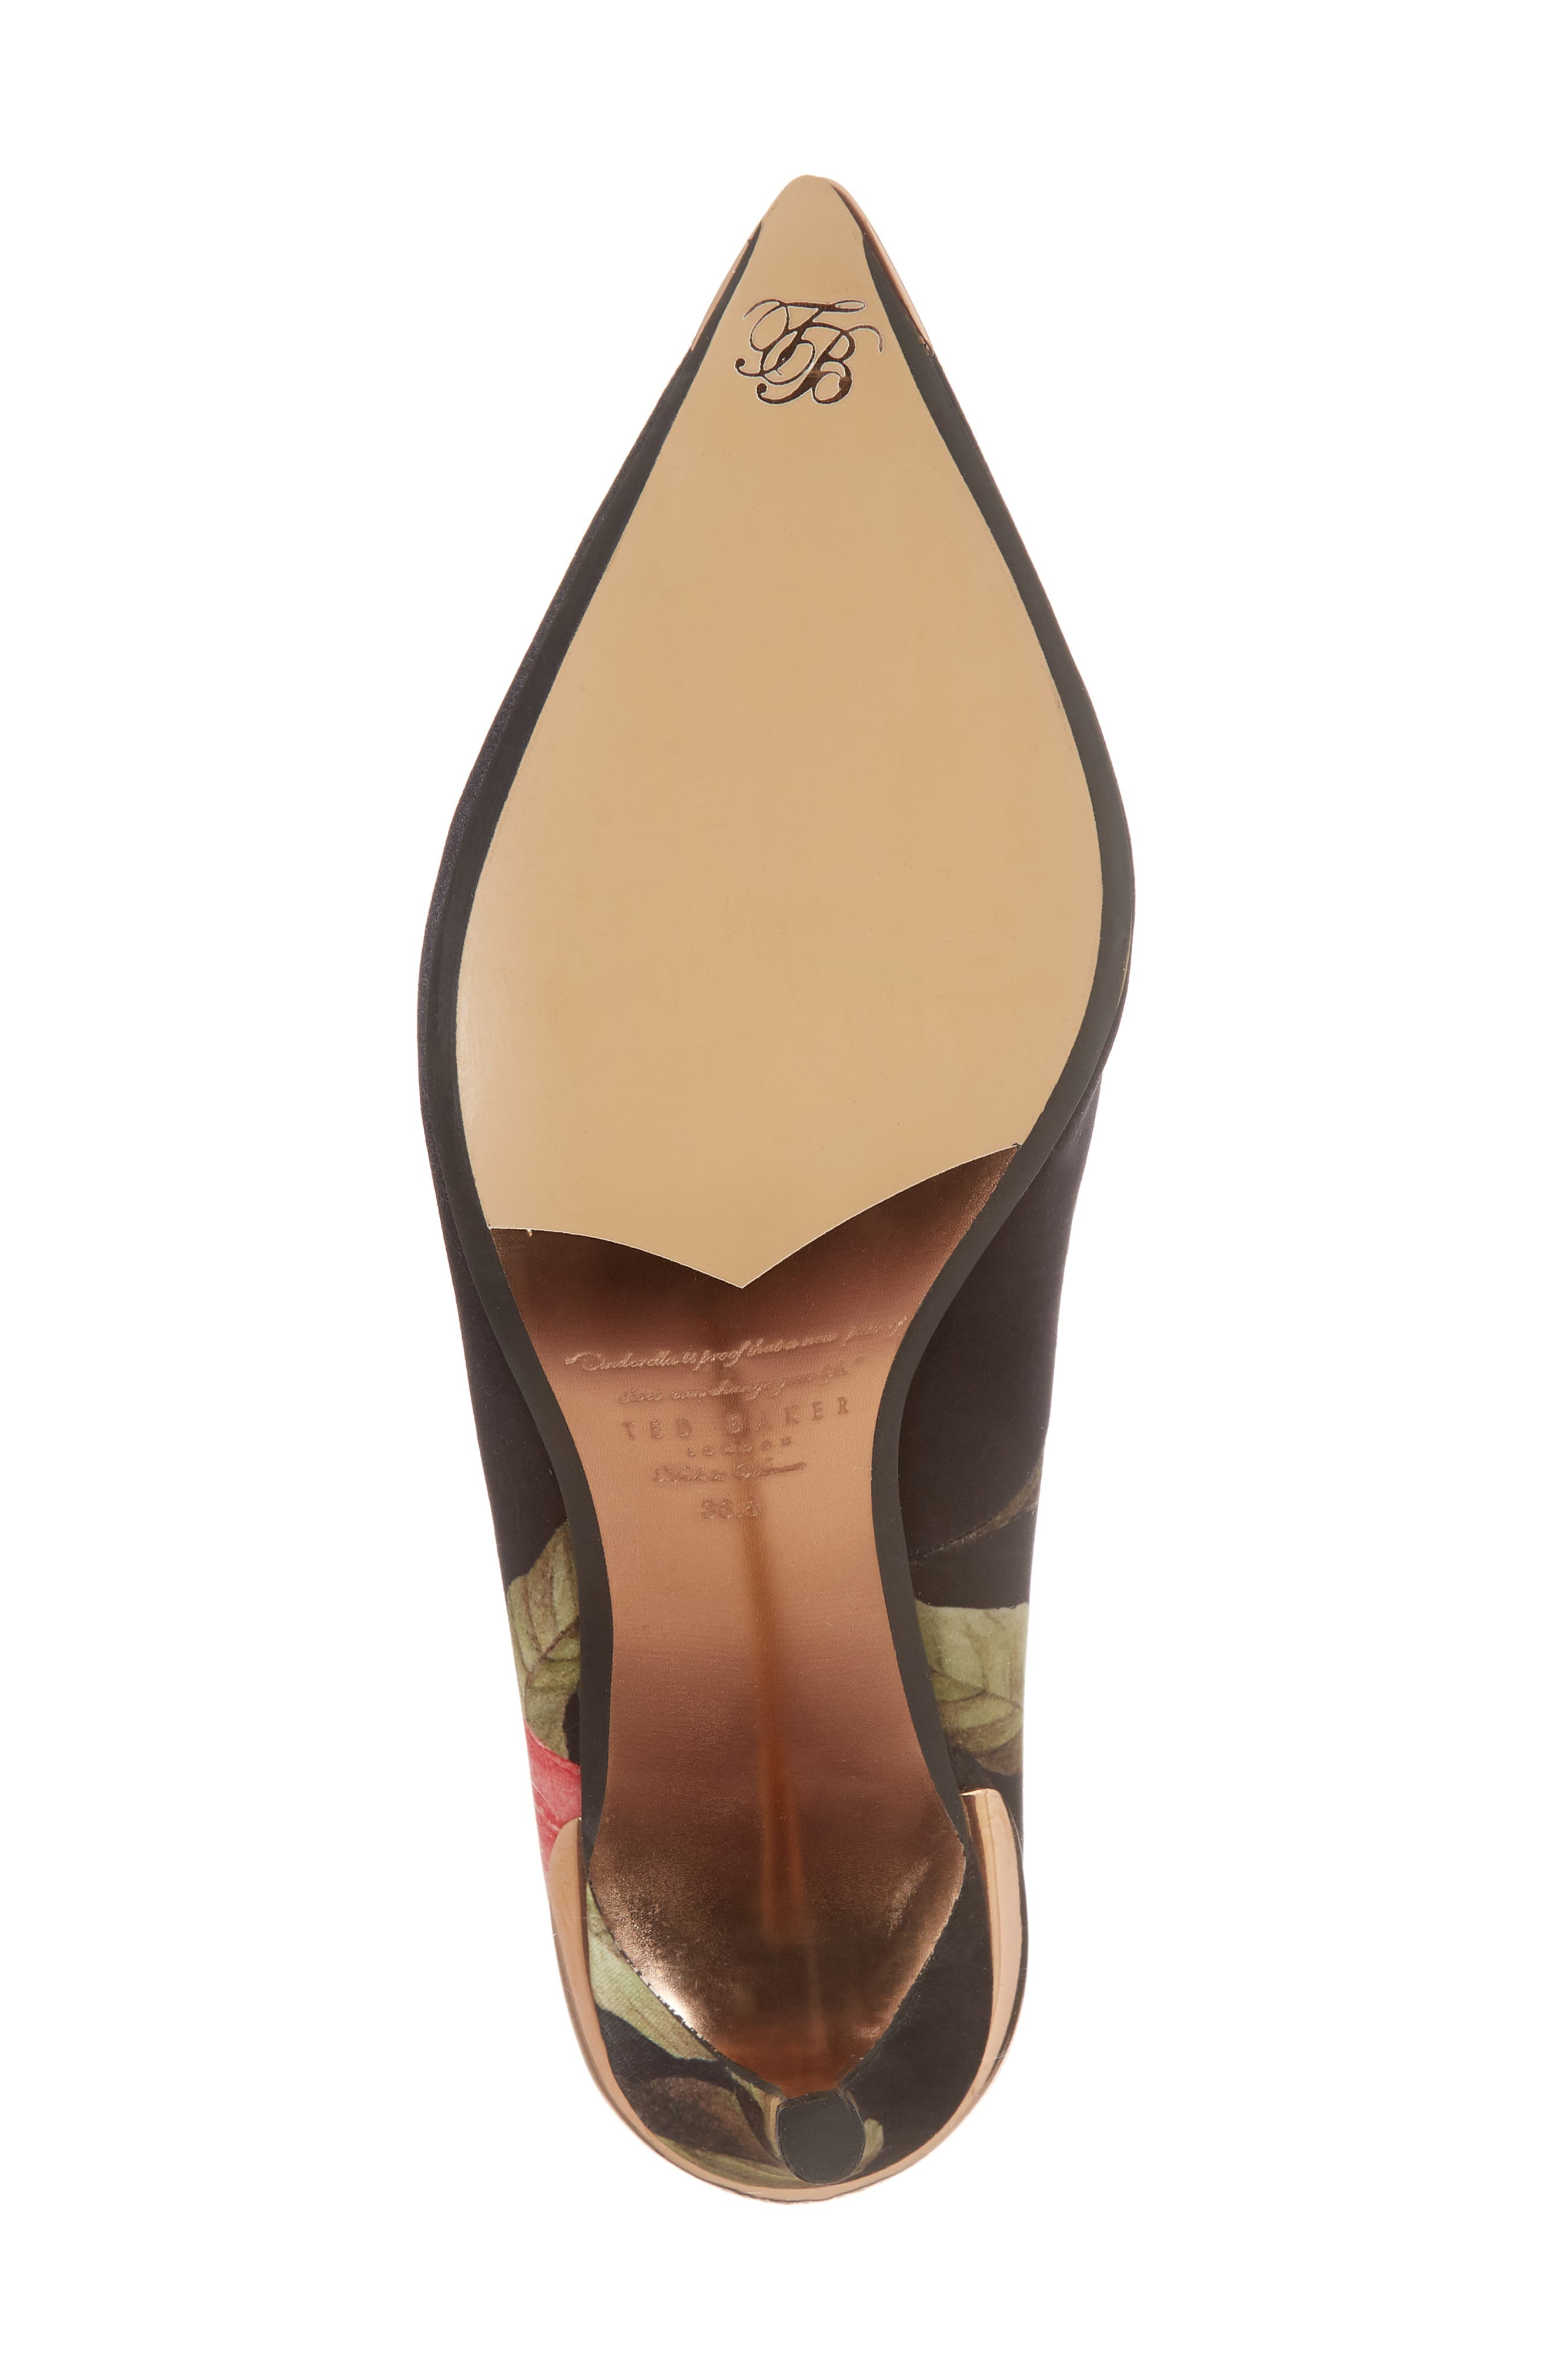 TED BAKER LONDON,                             Pointy Toe Pump,                             Alternate thumbnail 6, color,                             001